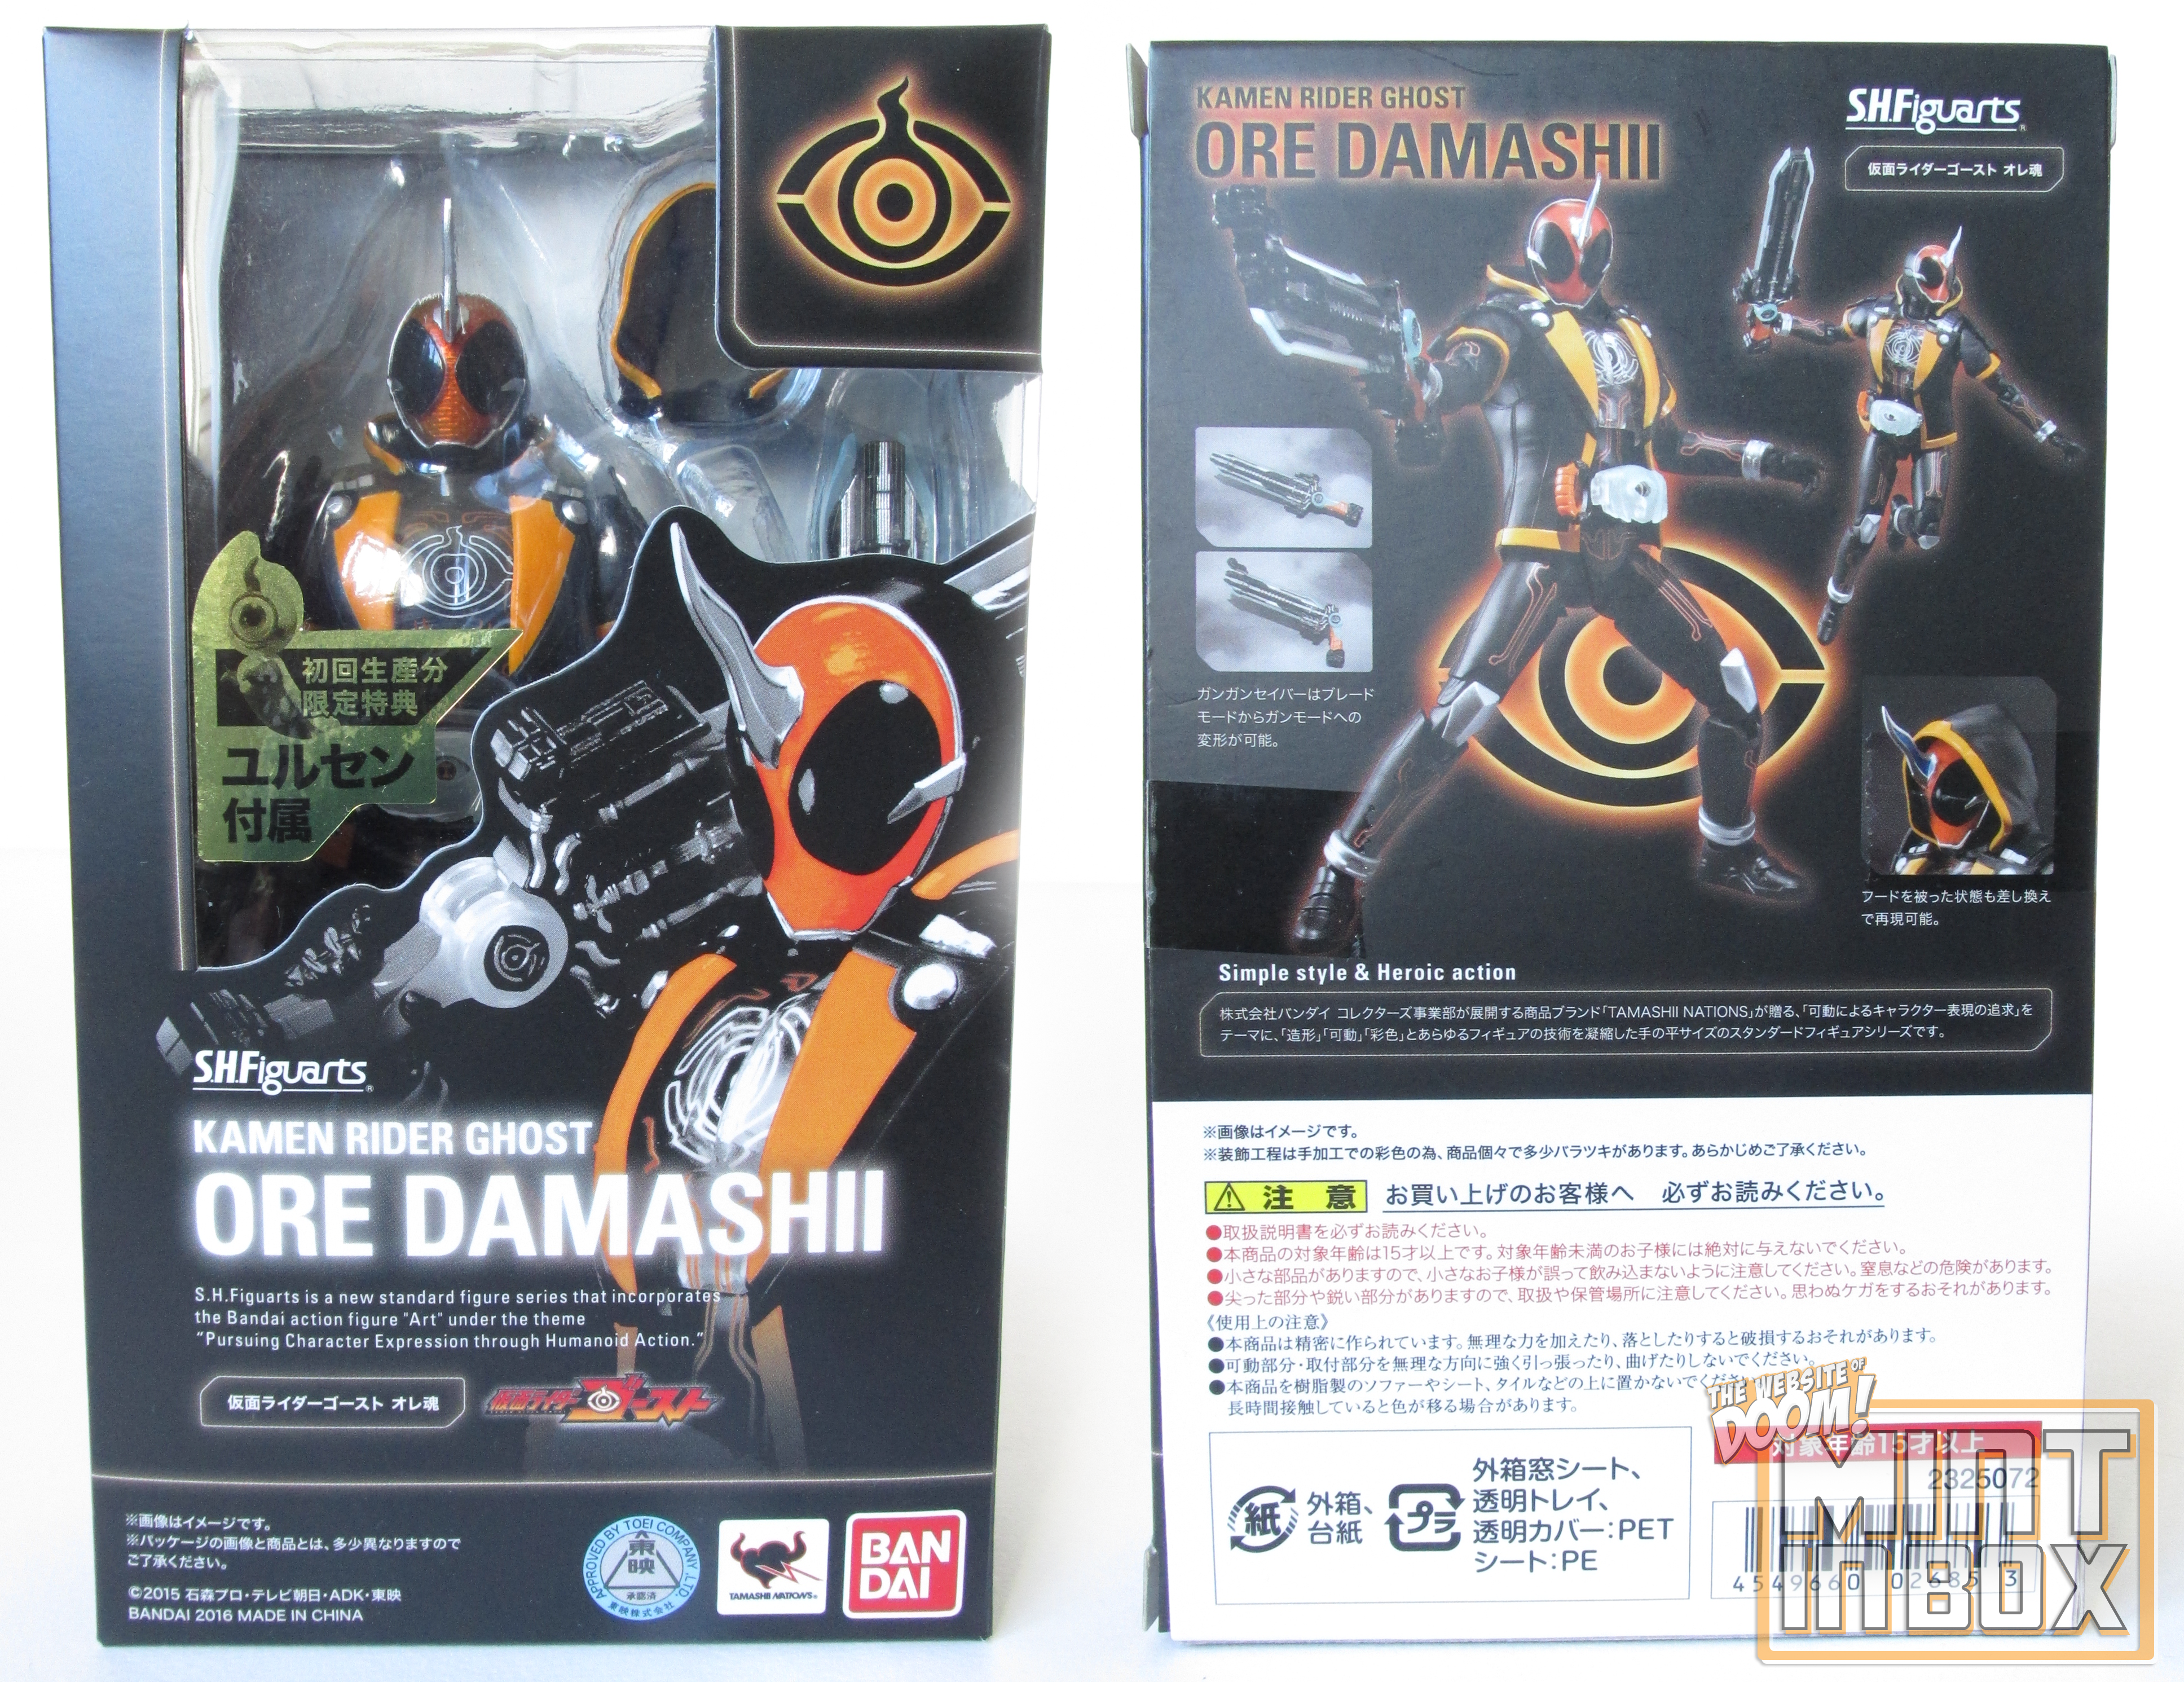 ... Kamen Rider Ghost Ore Damashii! kamen_rider_ghost_sh figuarts_review_mint in box (1)